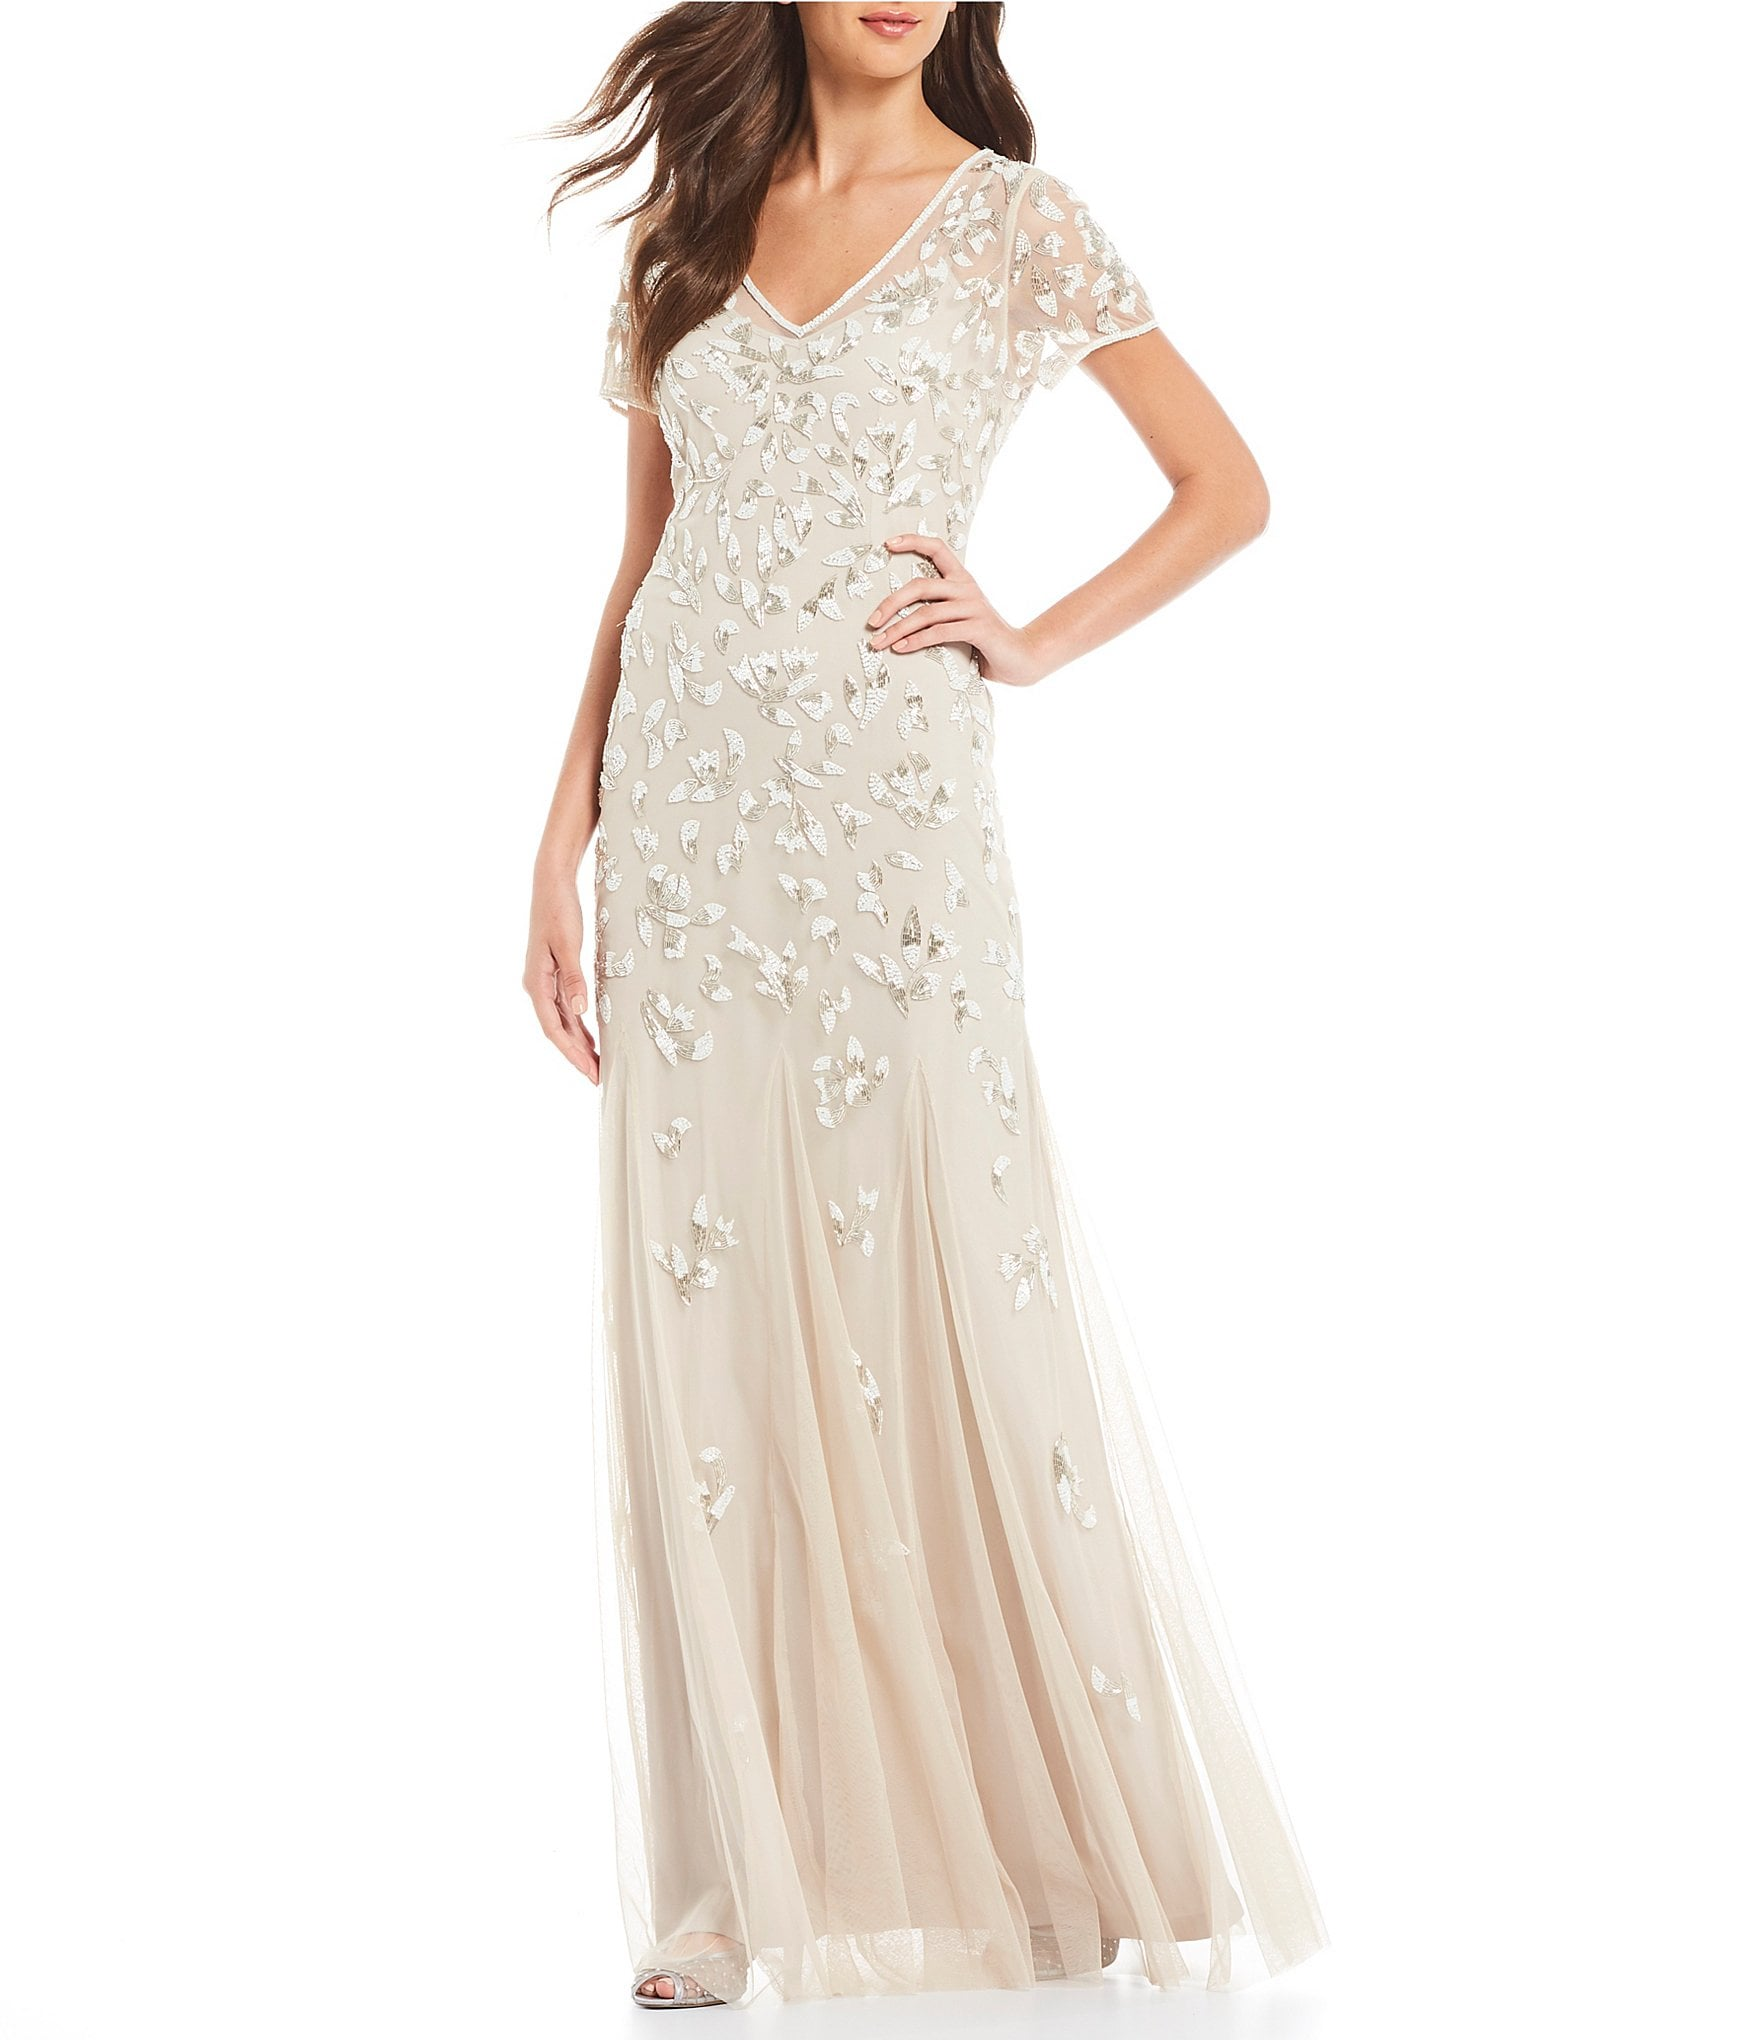 Dillards Wedding Gifts: Adrianna Papell Illusion Mesh V-Neck Beaded Gown